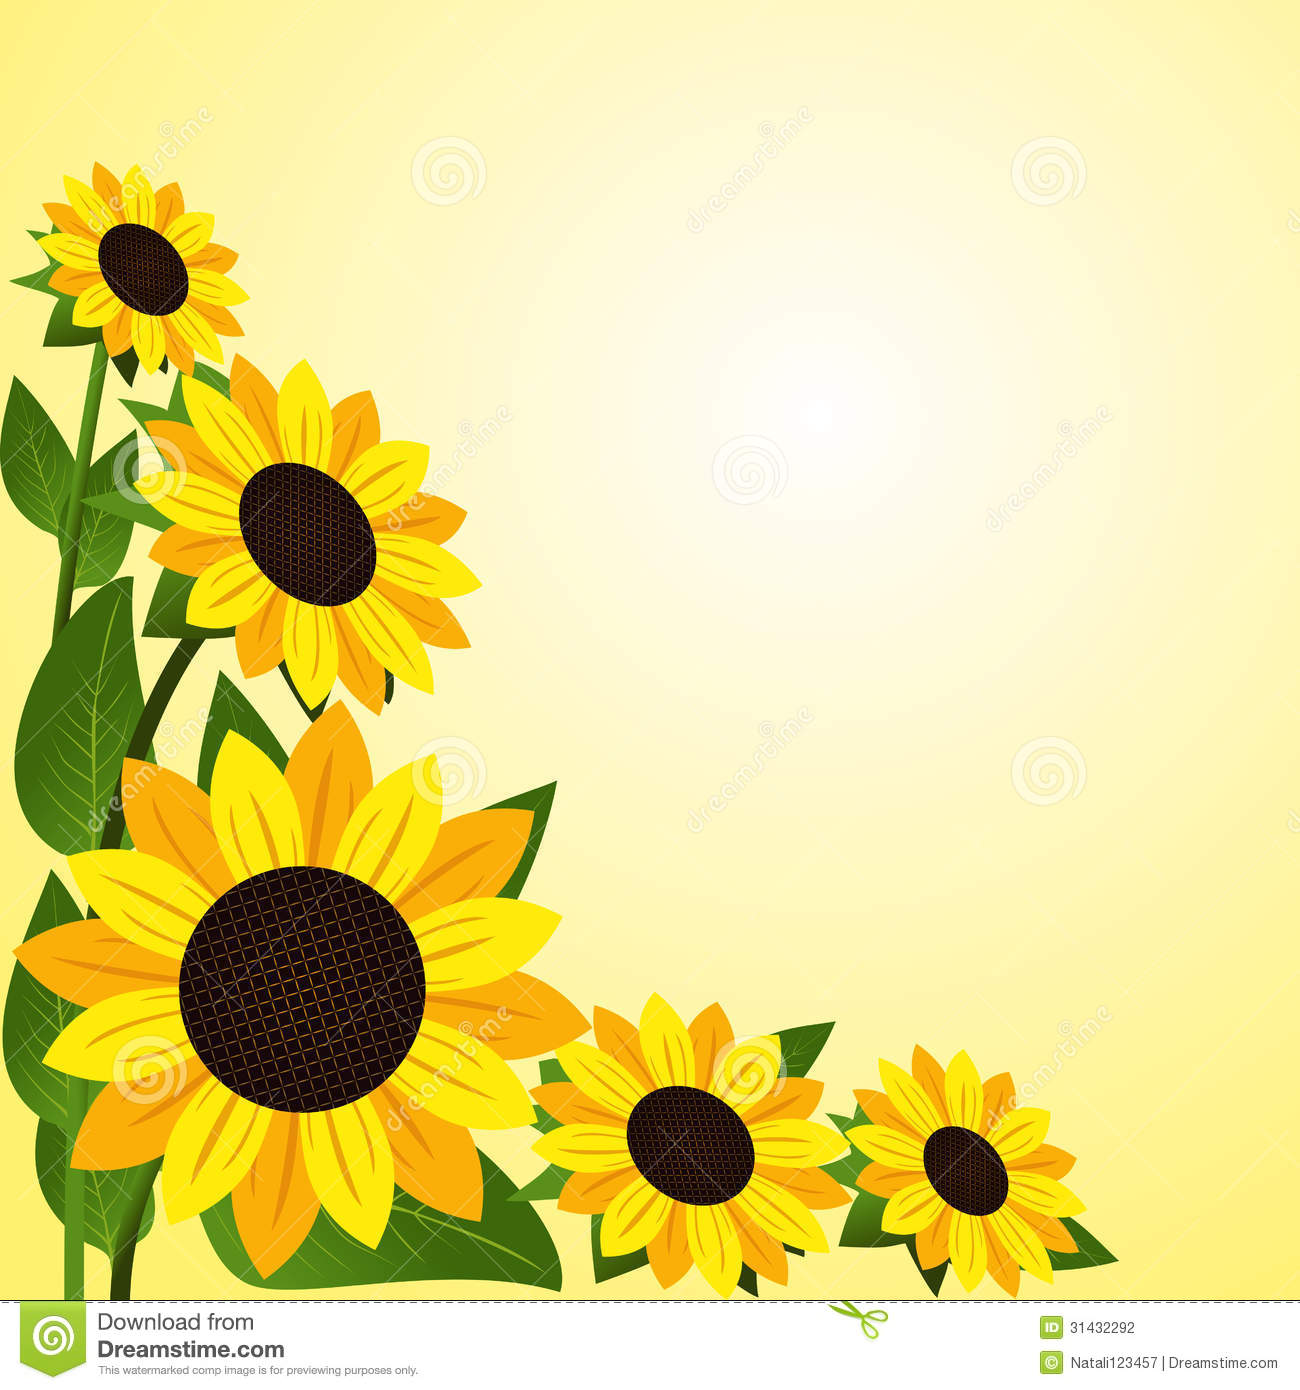 clip art borders sunflowers - photo #19